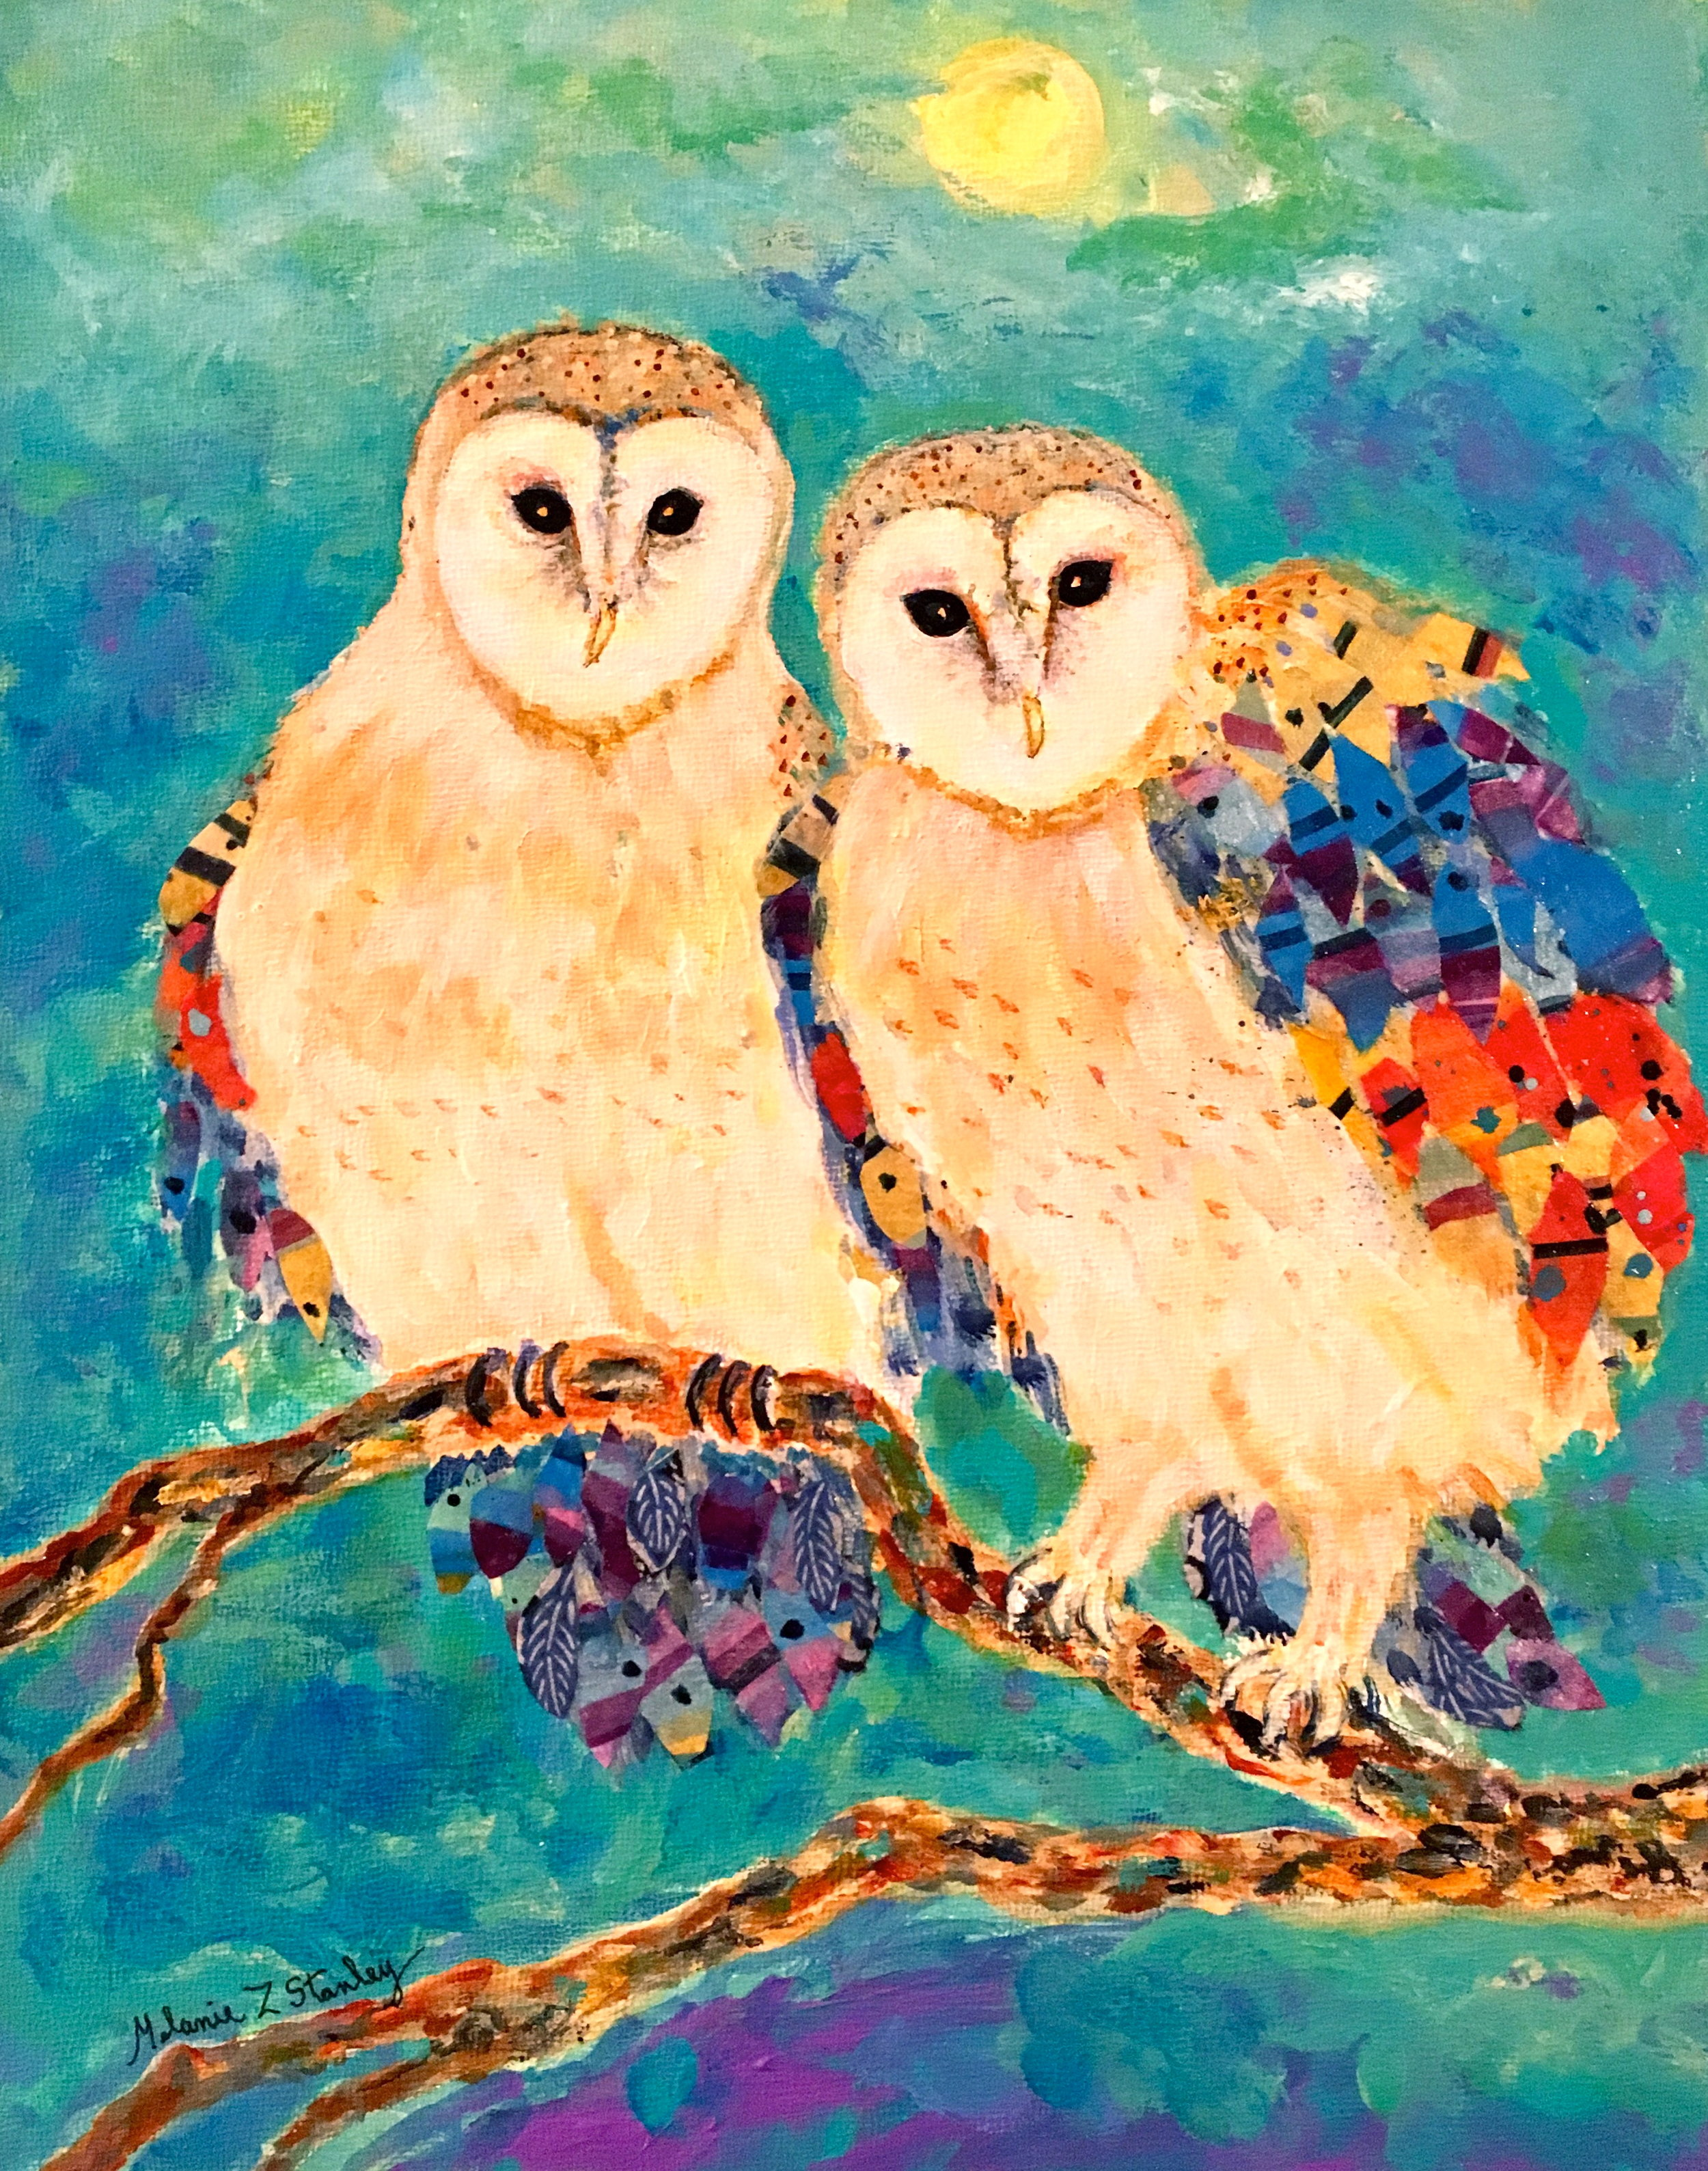 Give a Hoot About Owls! - Melanie Stanley